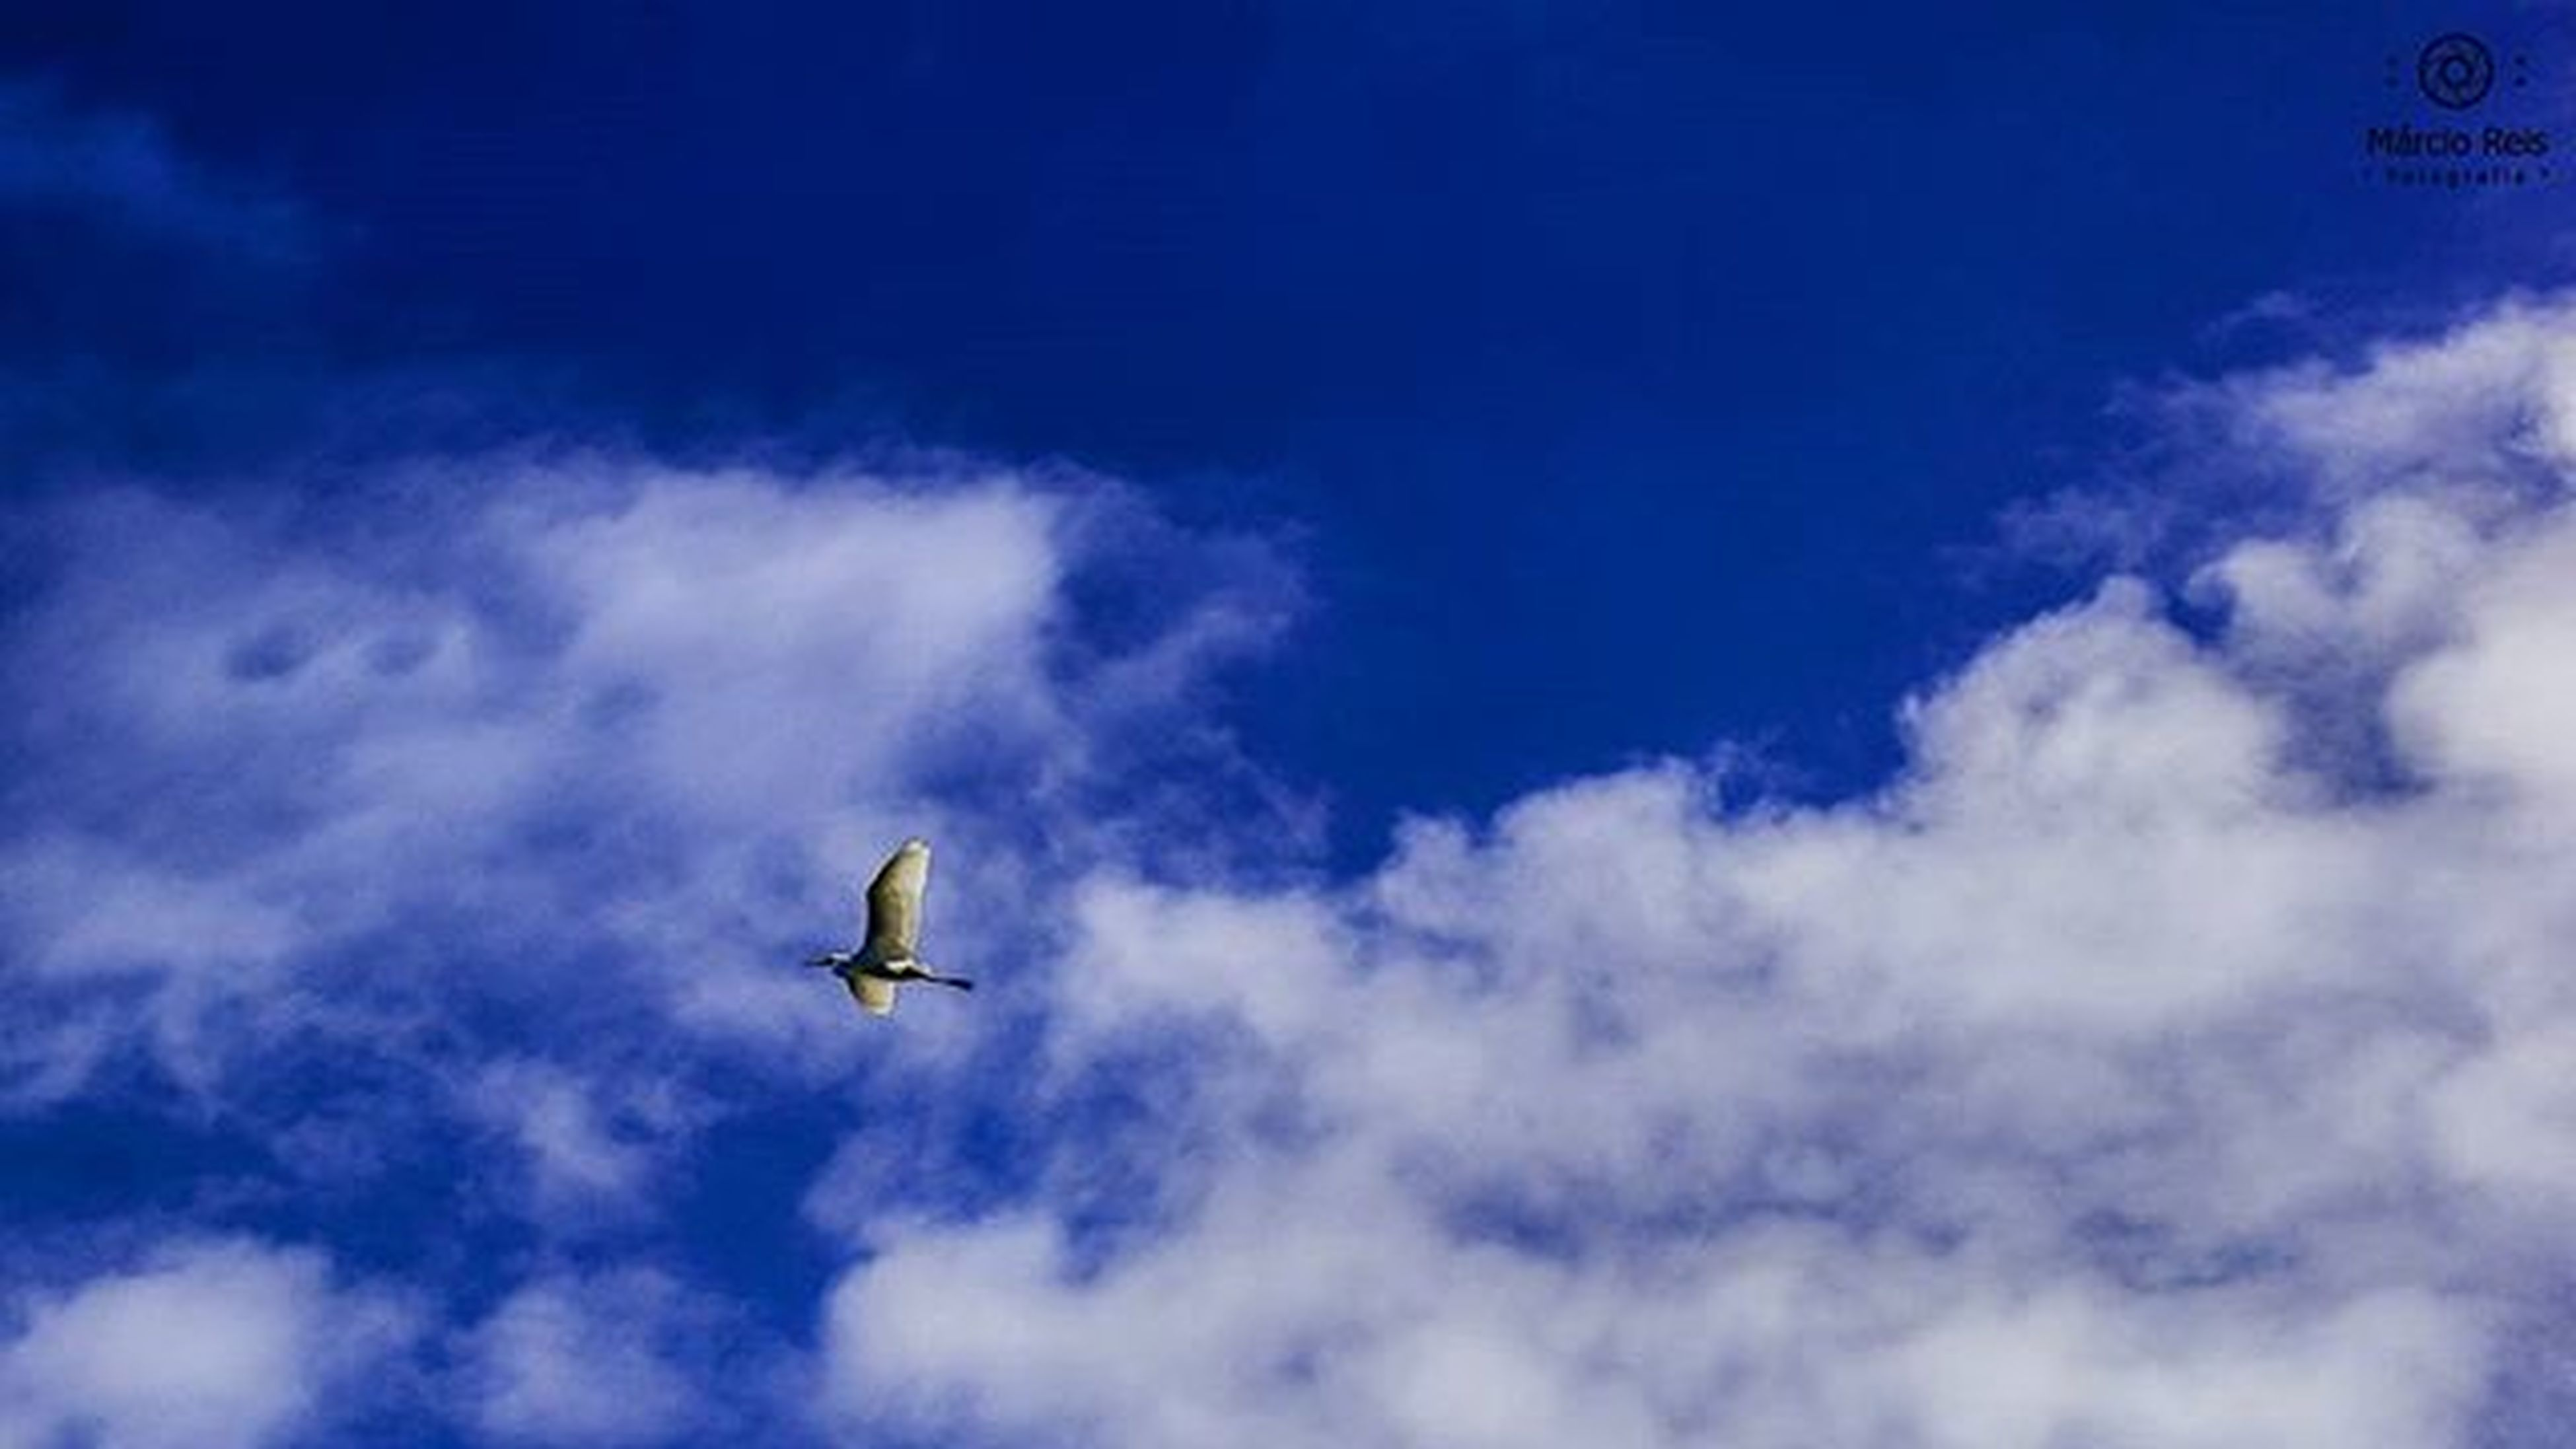 flying, low angle view, mid-air, sky, airplane, transportation, air vehicle, cloud - sky, blue, mode of transport, on the move, cloud, nature, cloudy, motion, day, outdoors, wildlife, travel, journey